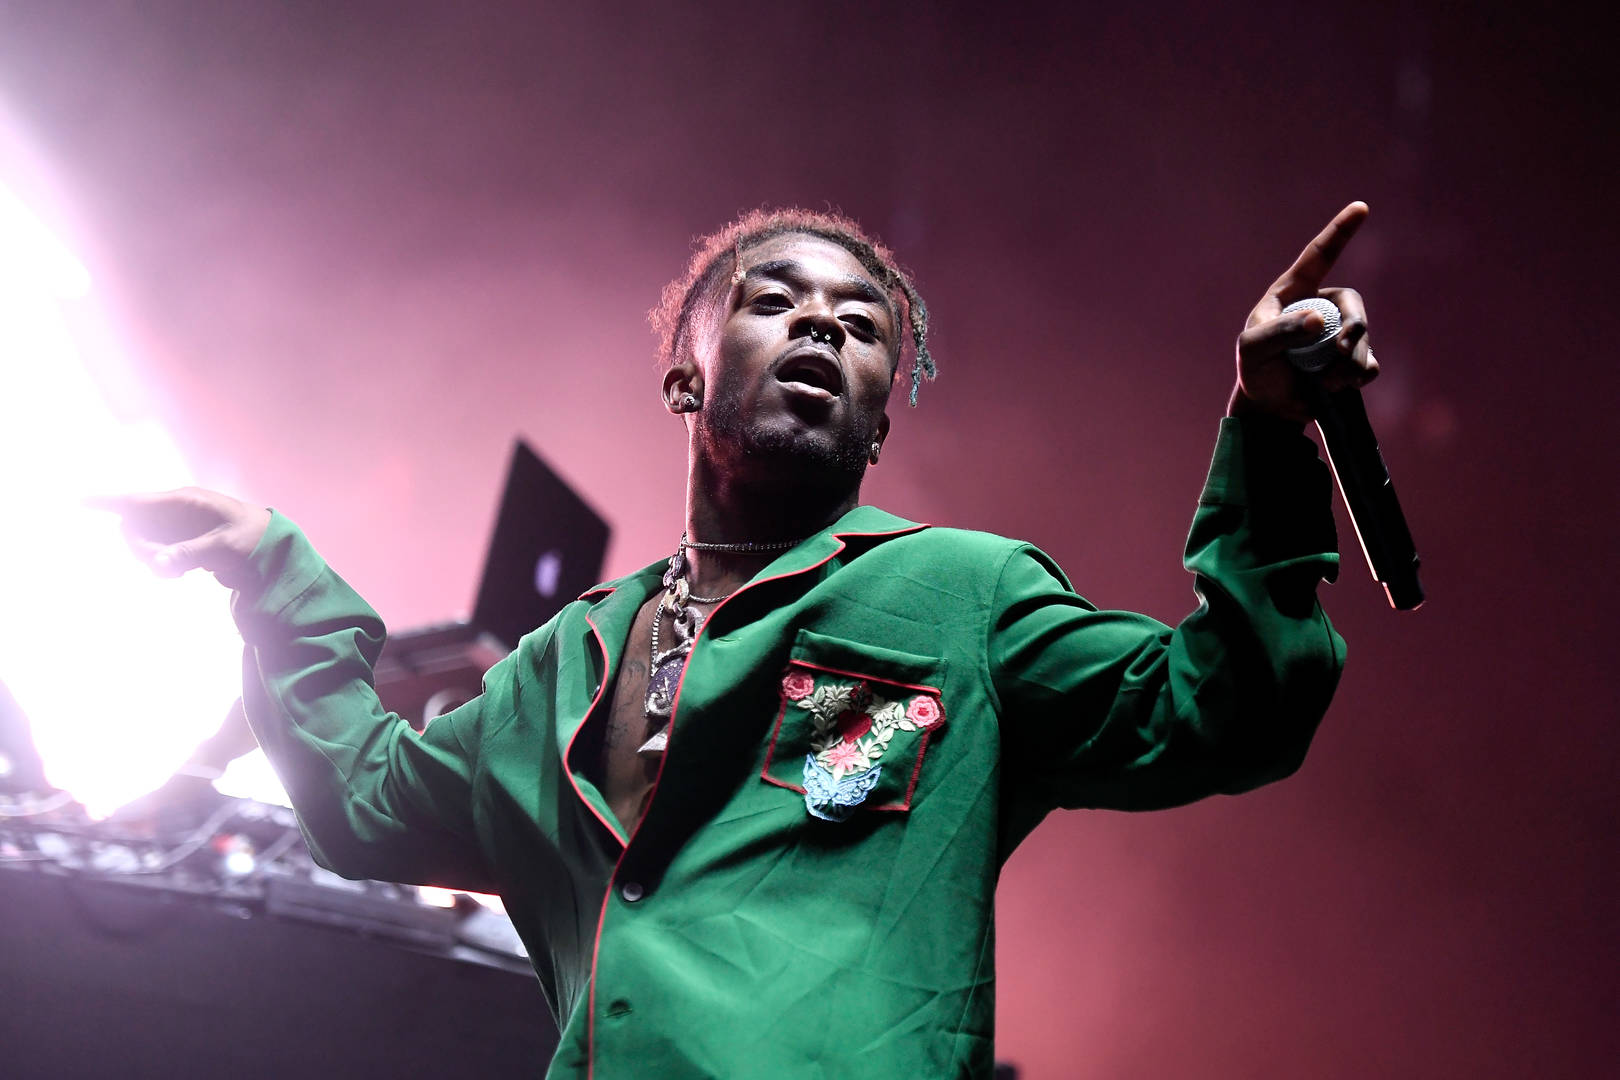 Lil Uzi Vert's Roc Nation Deal Officially Acknowledged By The Label